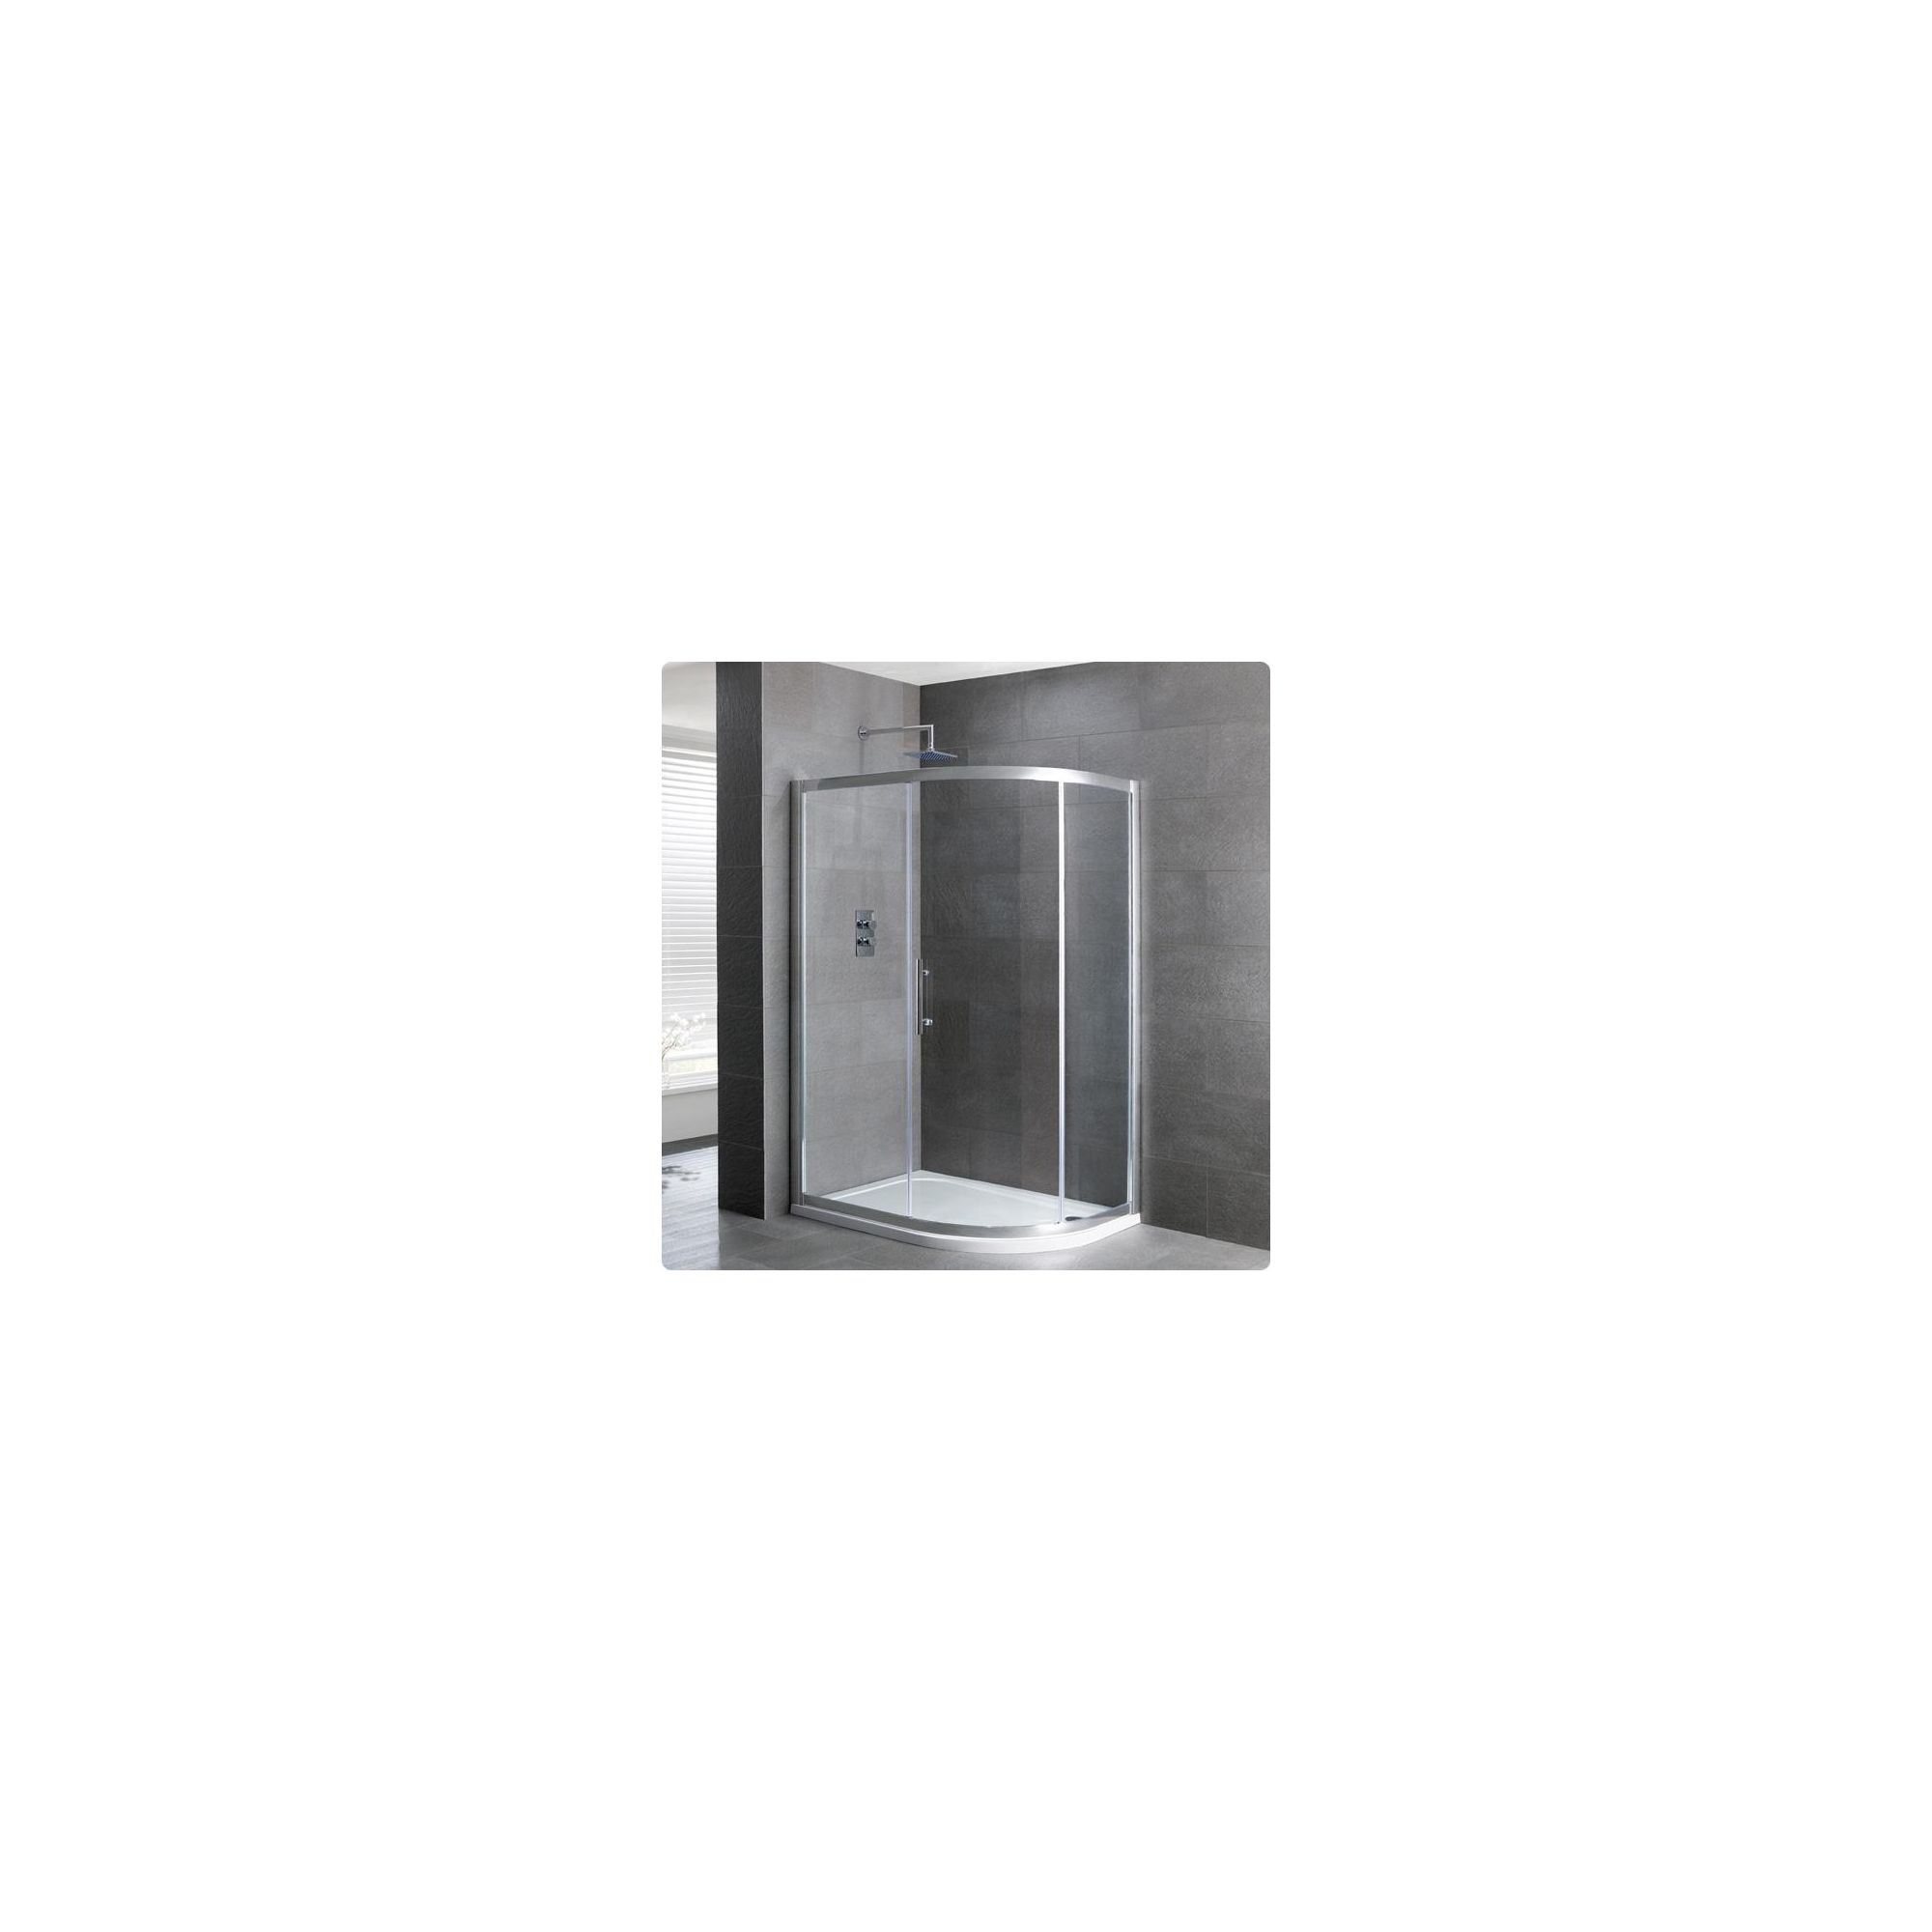 Duchy Select Silver 1 Door Offset Quadrant Shower Enclosure 1200mm x 800mm, Standard Tray, 6mm Glass at Tescos Direct